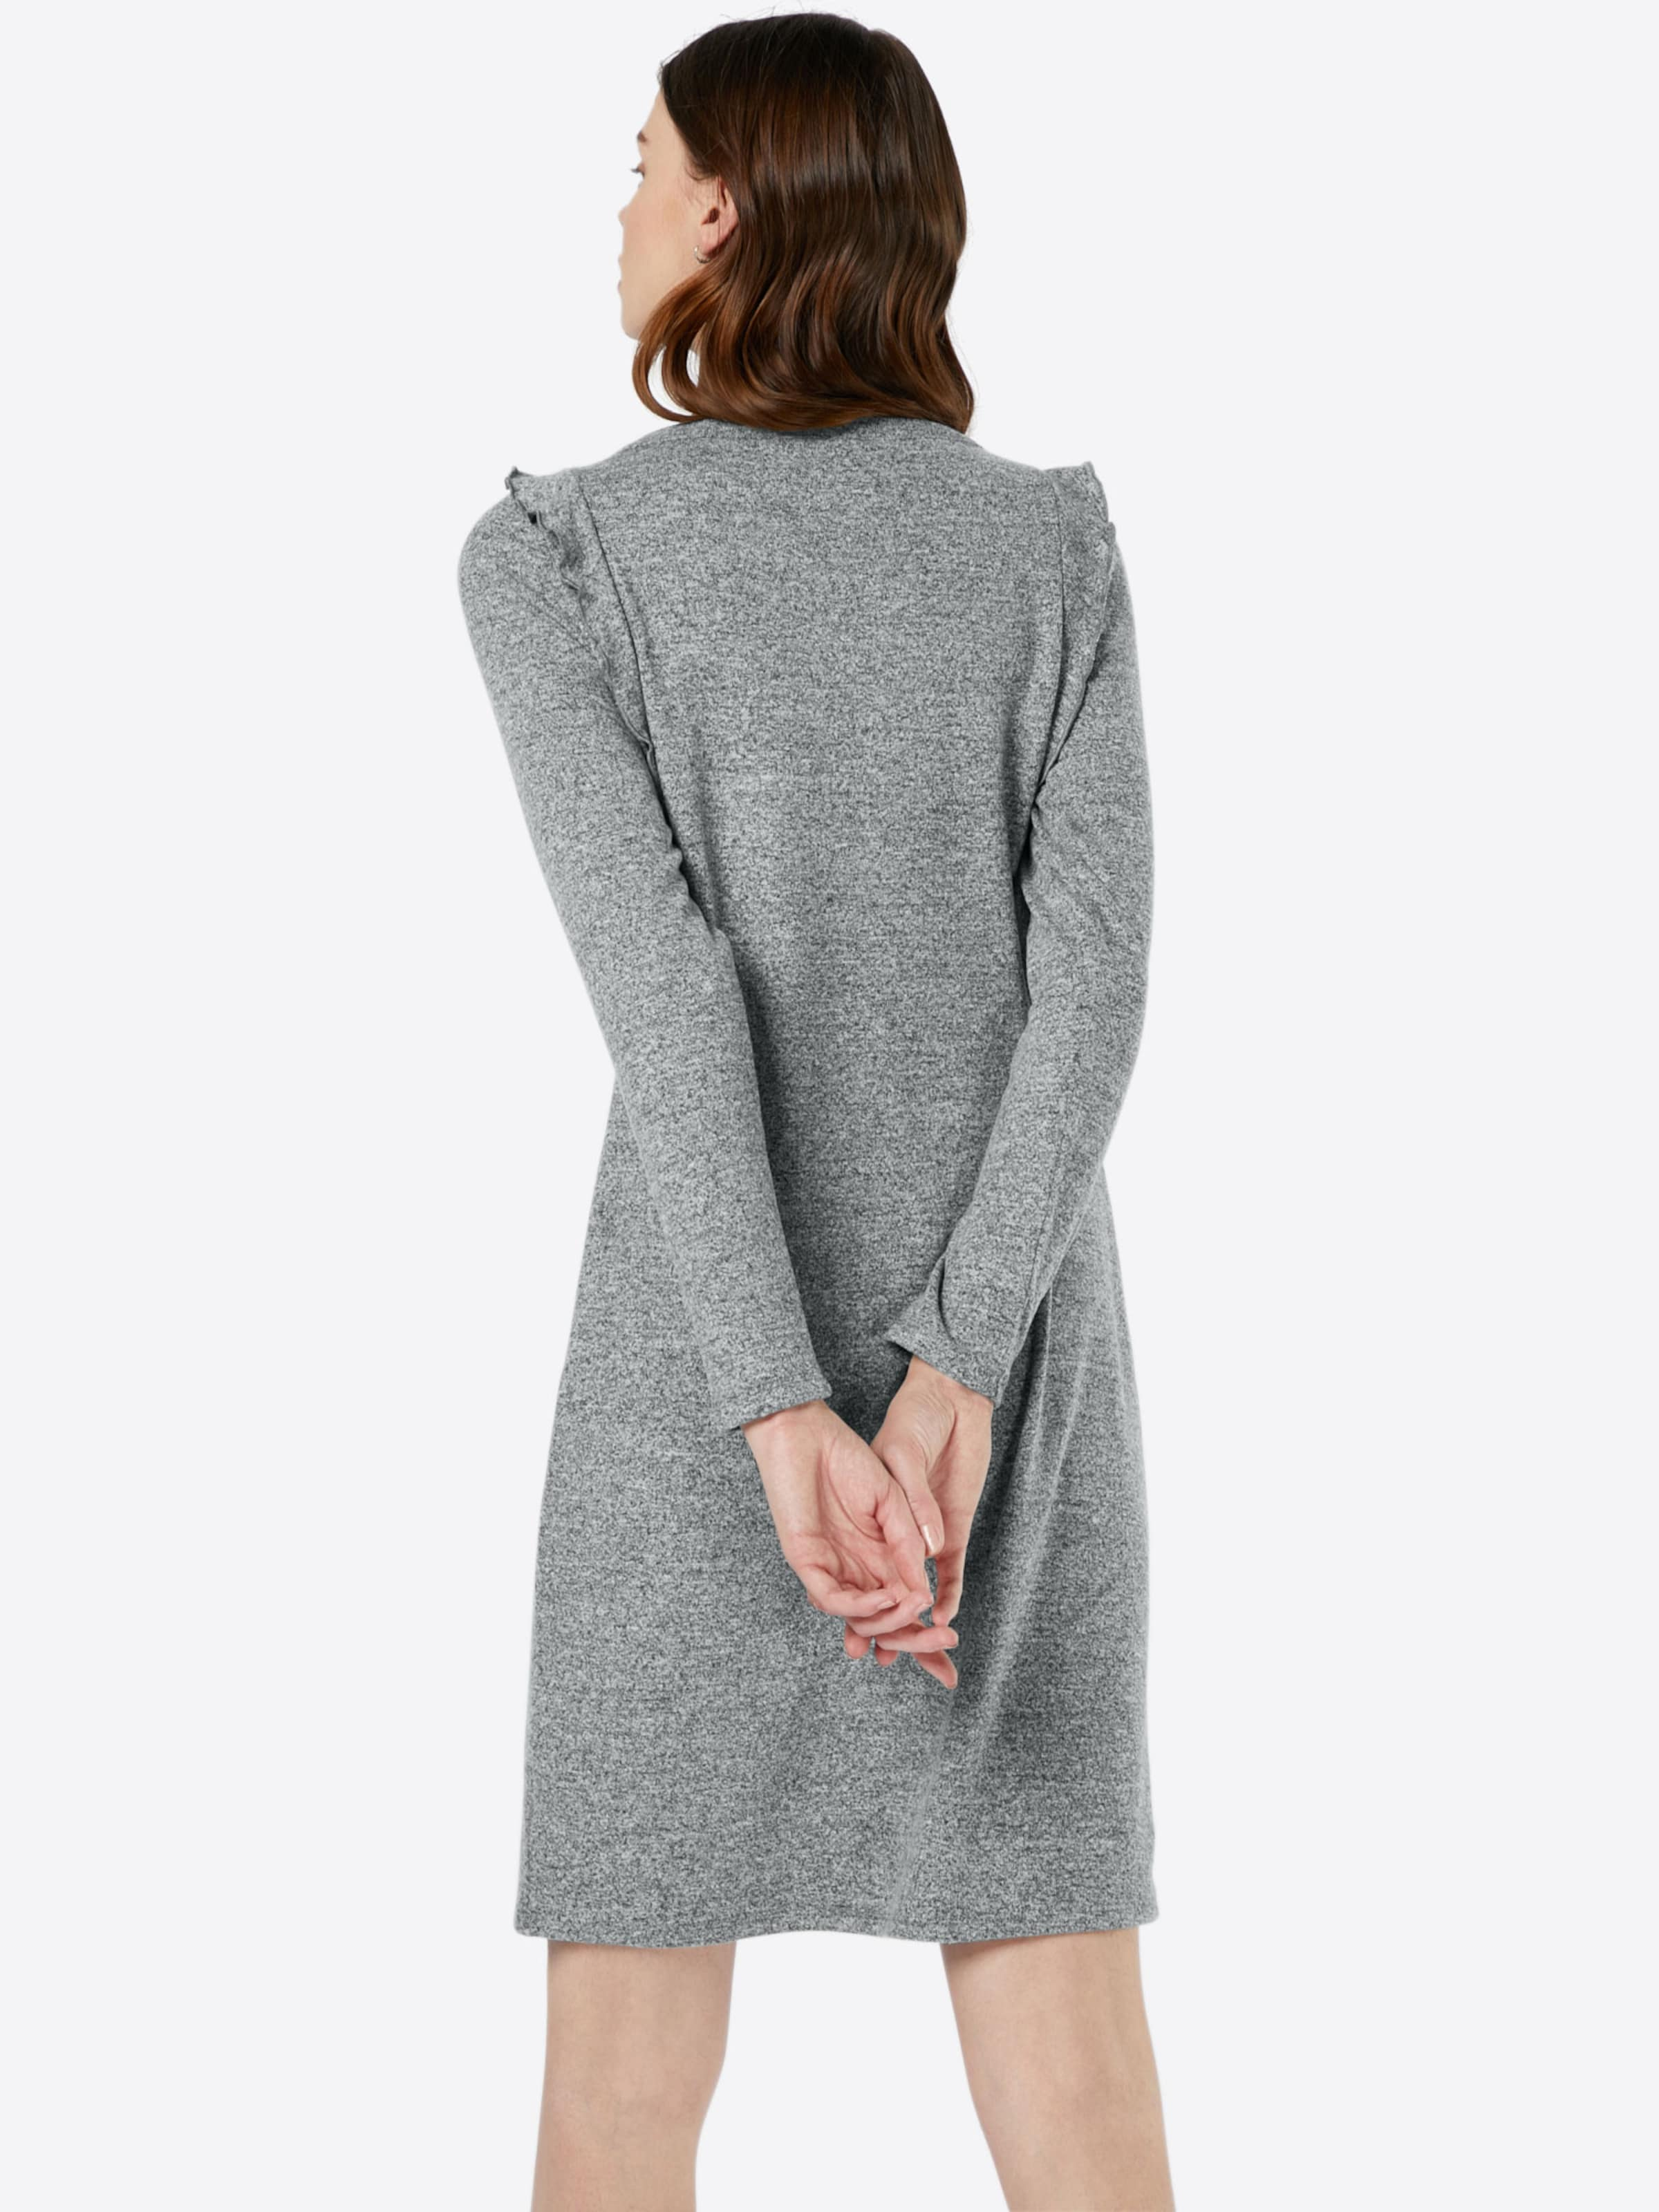 In Out Comma Kleid Cut Graumeliert Mit kiXuOZTwP